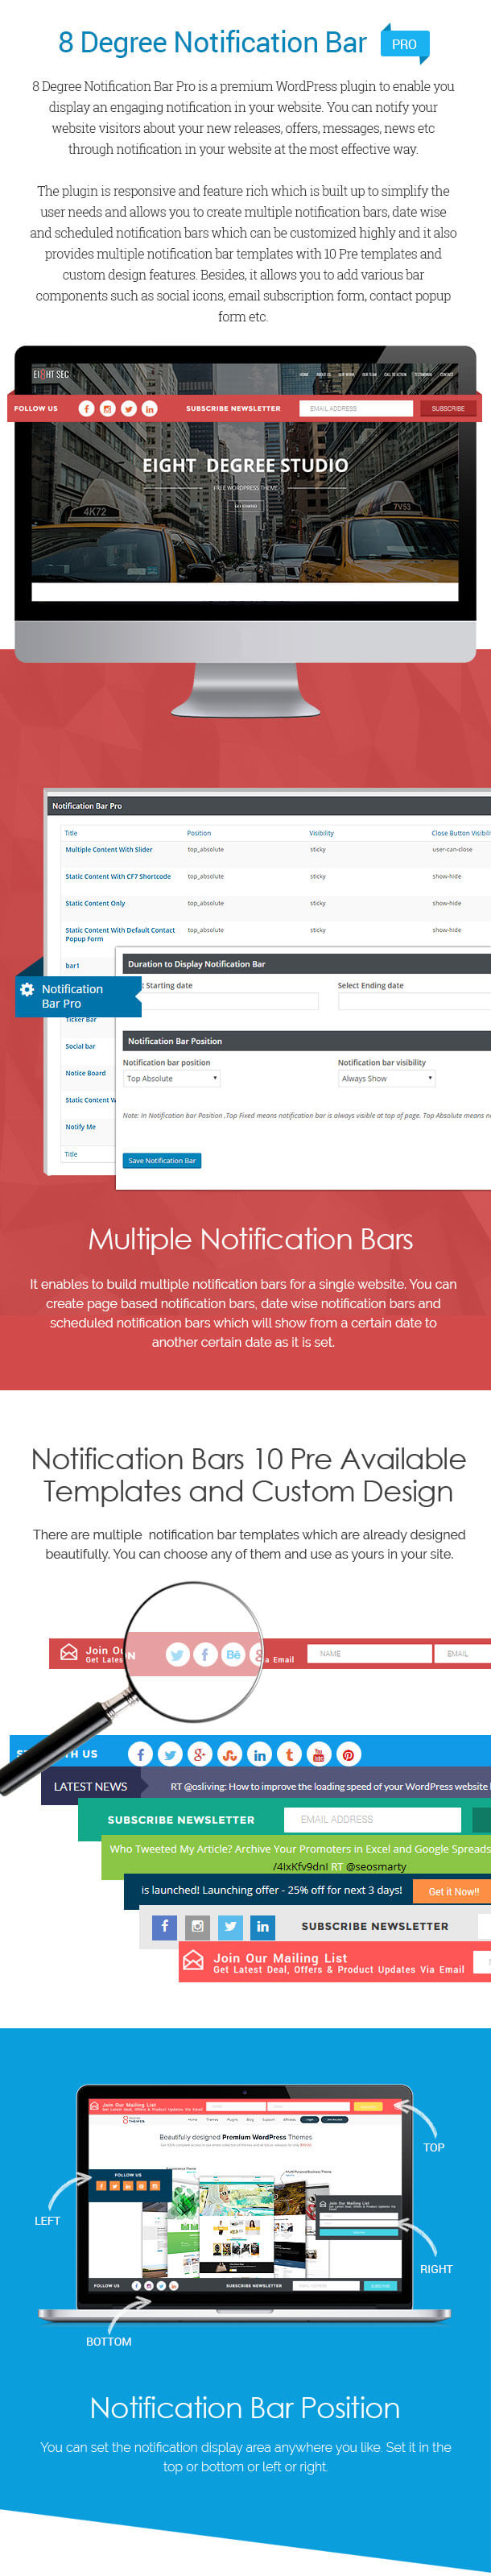 8Degree Notification Bar PRO - Premium Notification Bar Plugin